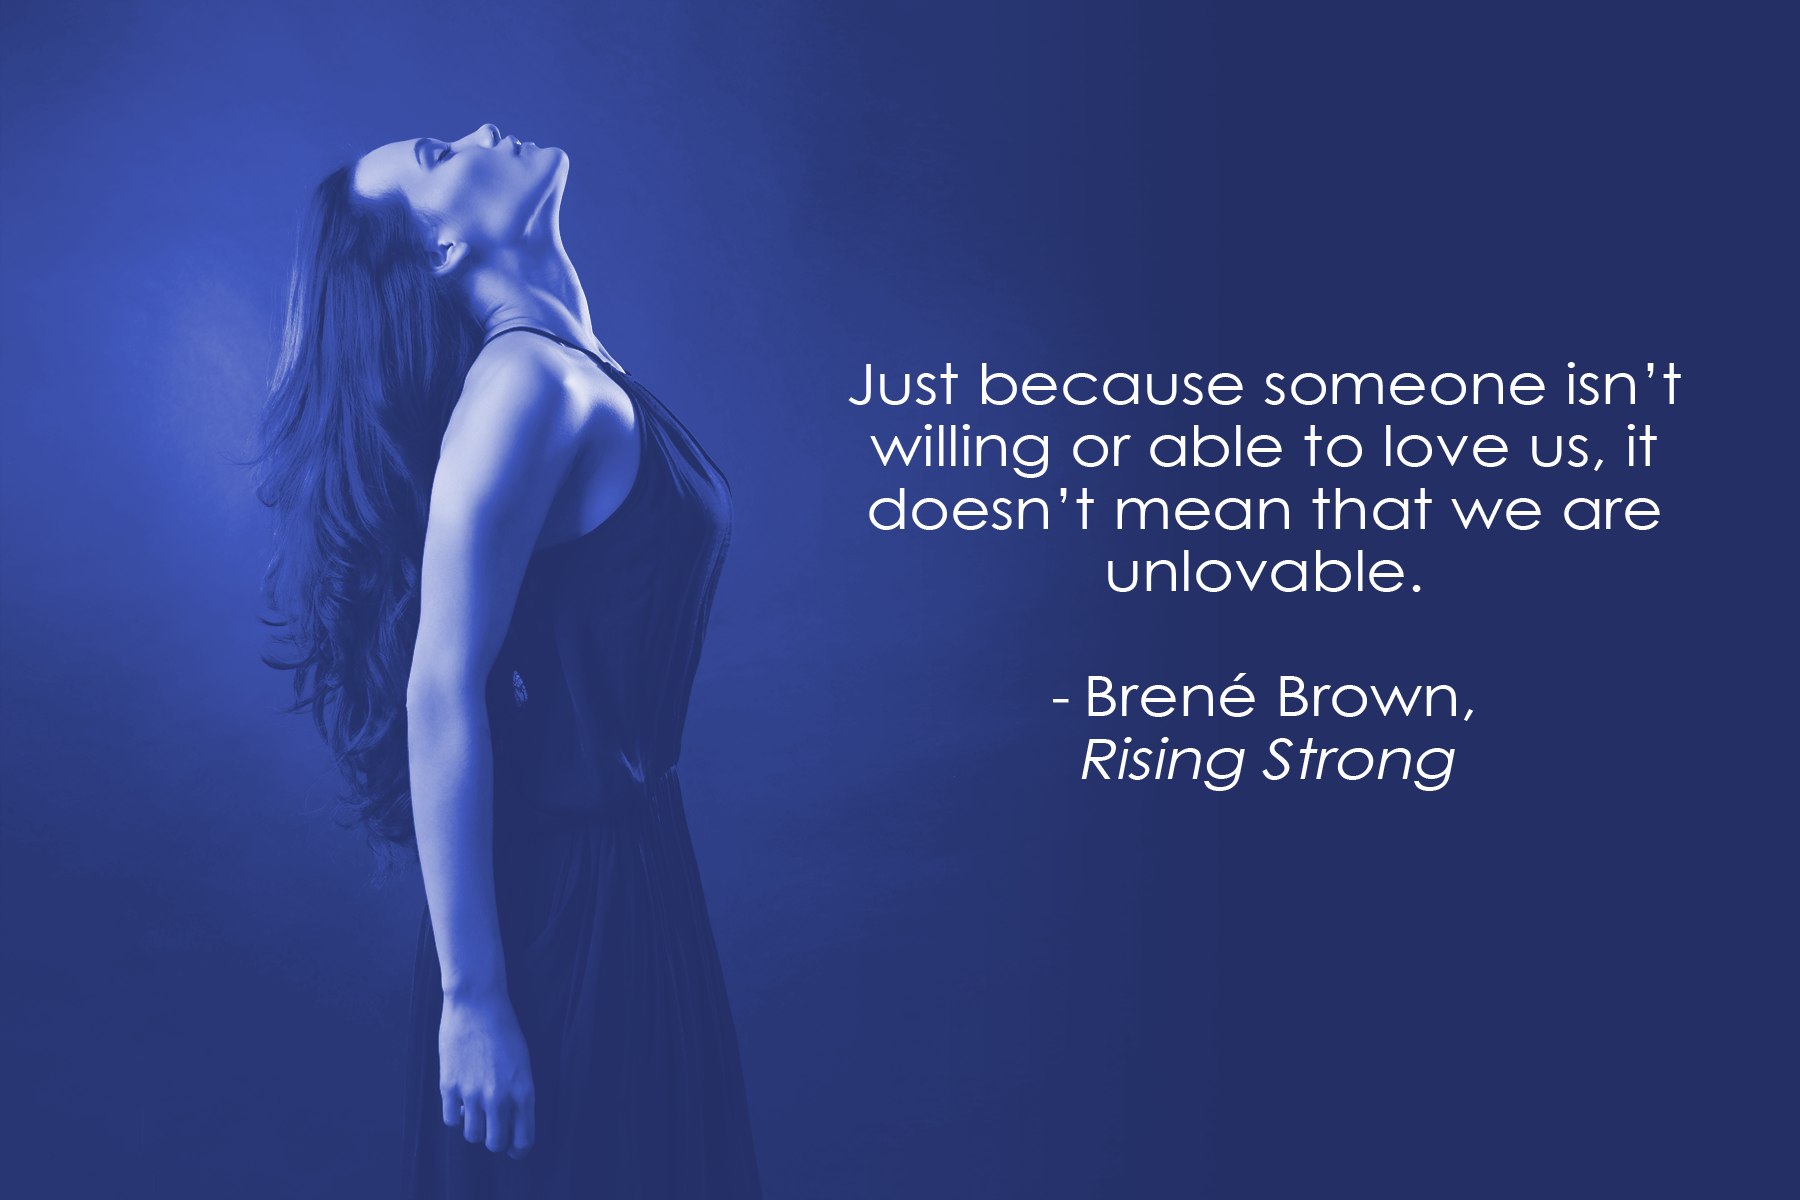 €�just Because Someone Isn't Willing Or Able To Love Us, It Doesn €�